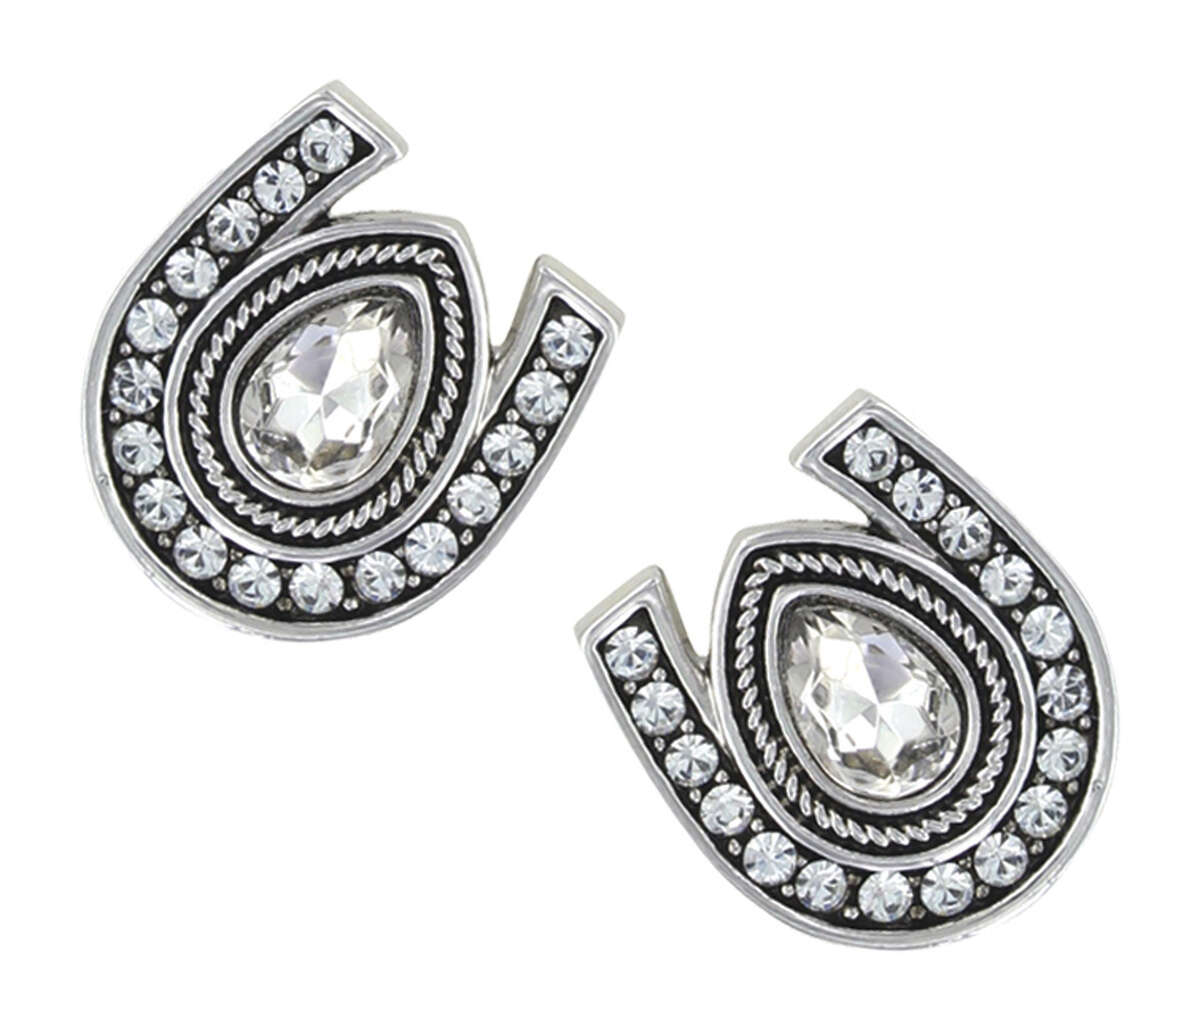 Montana Silversmiths horseshoe earrings, available at The Cheshire Horse. (Provided)